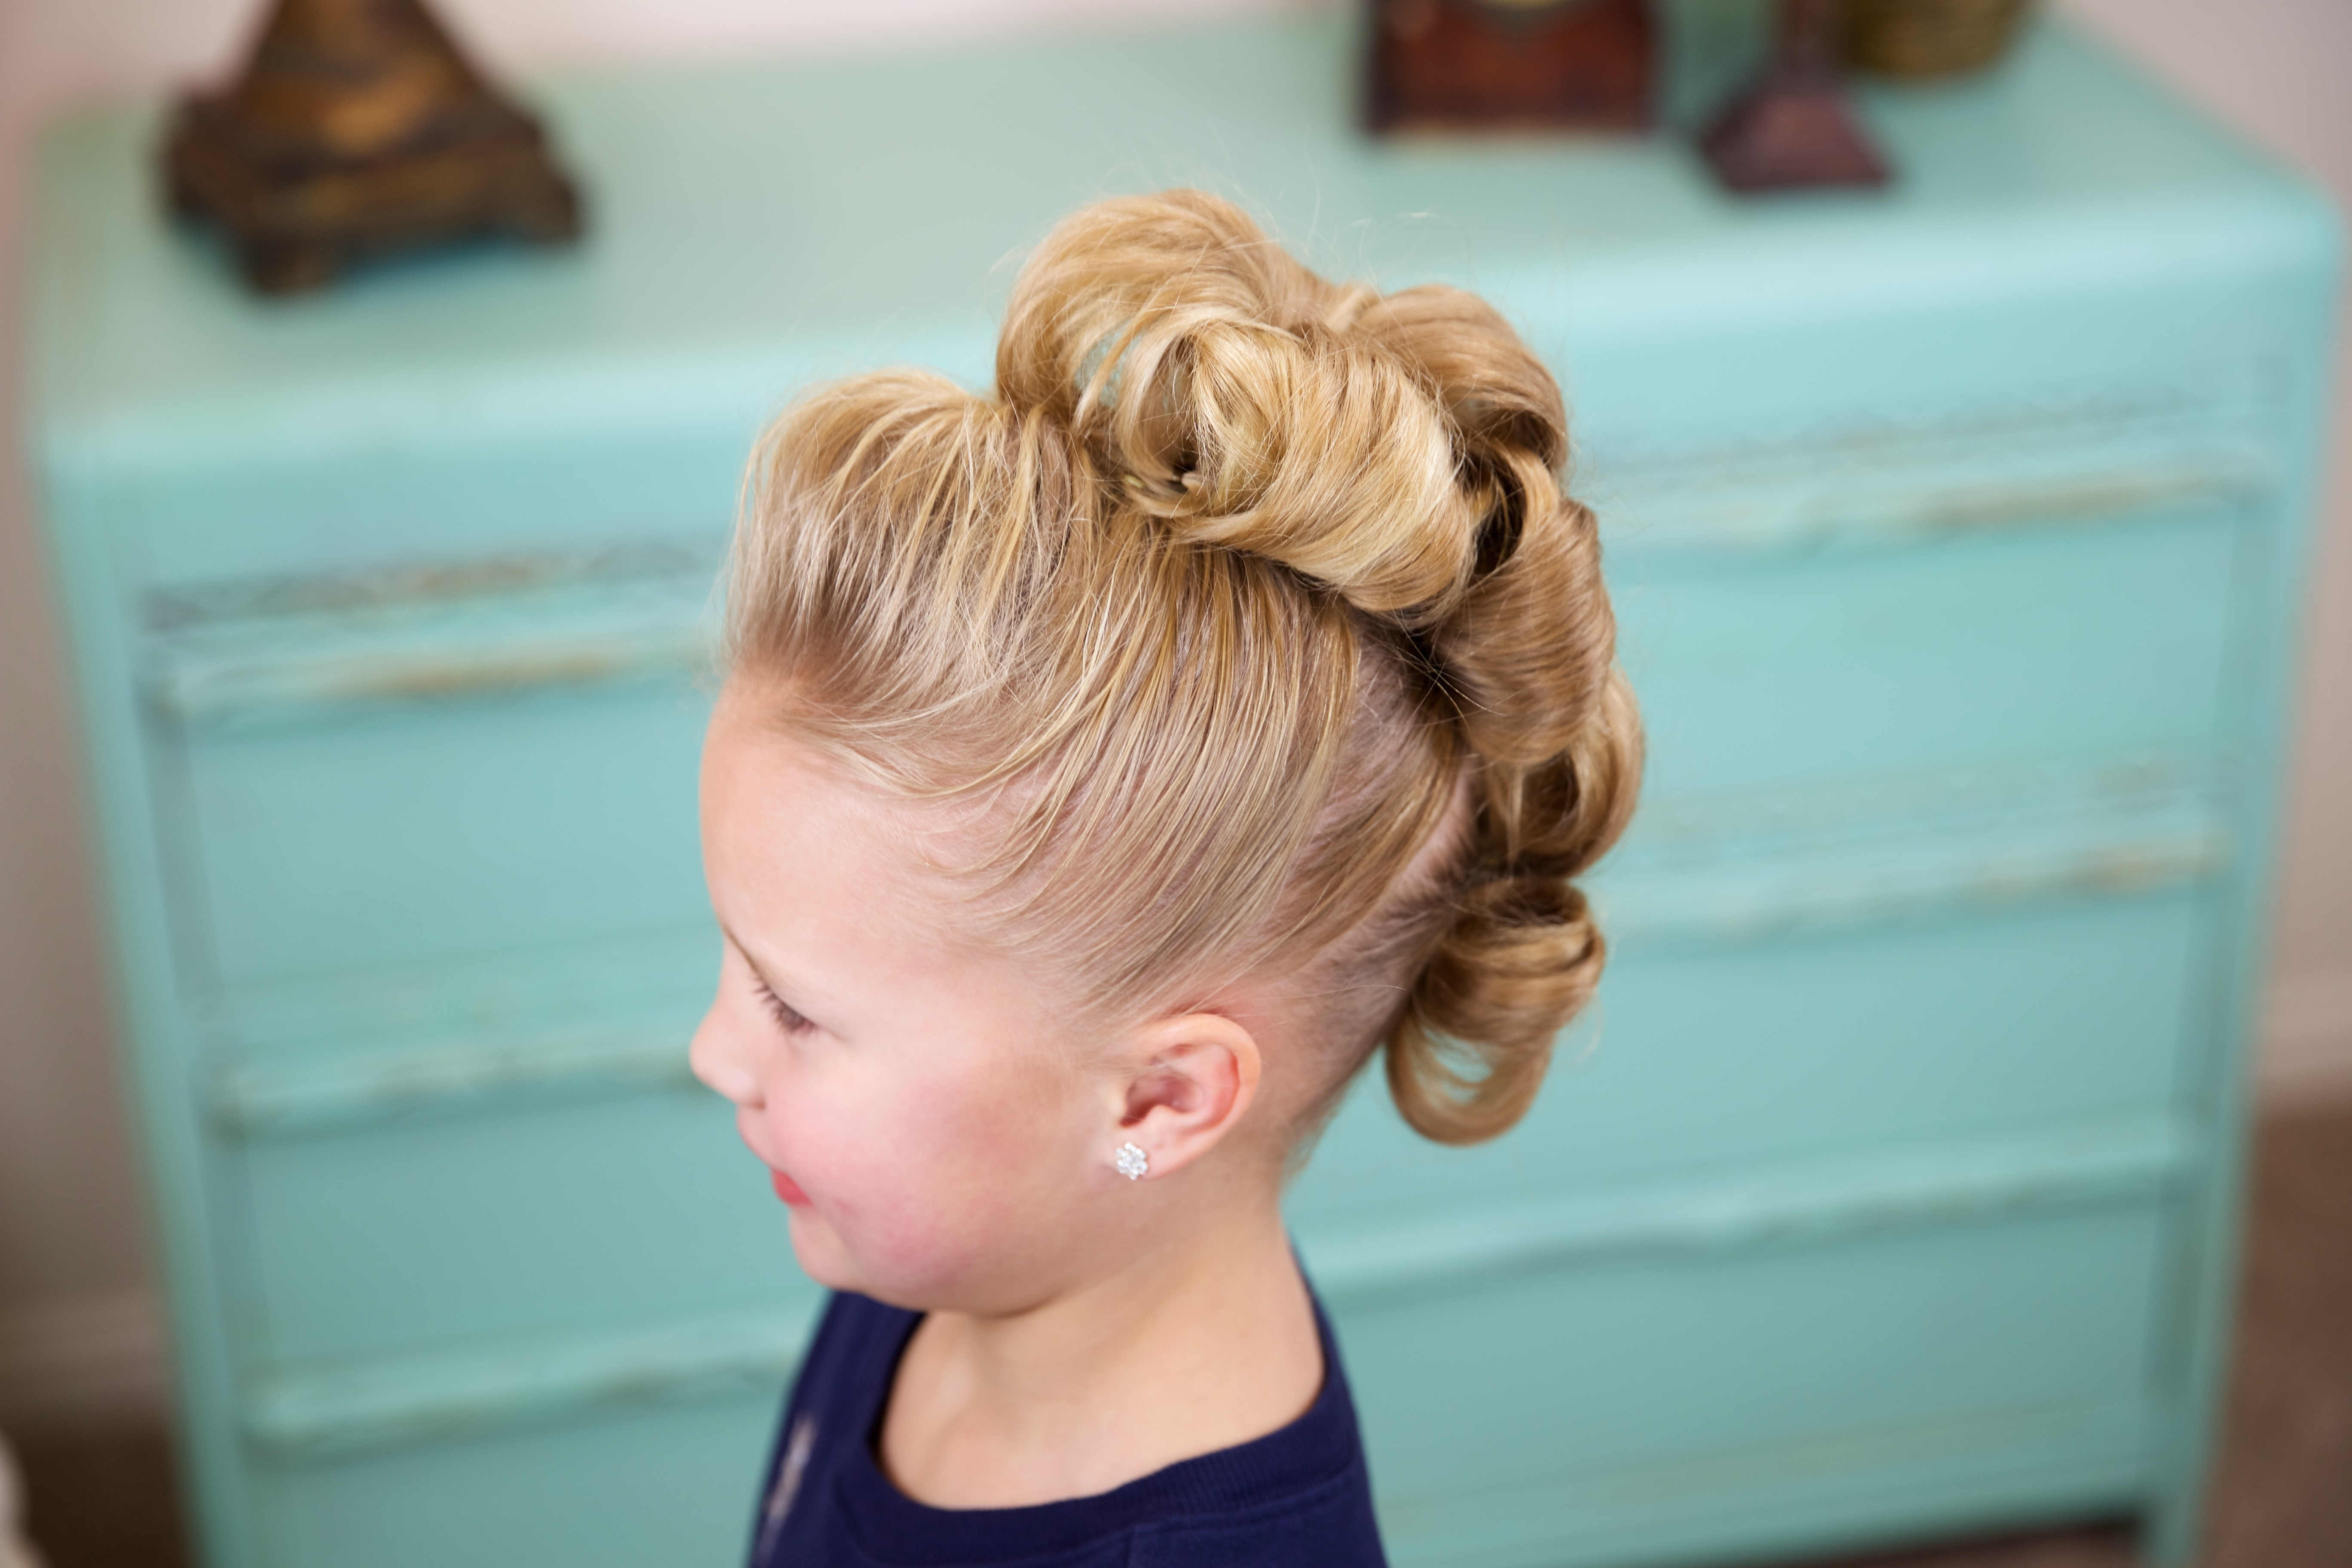 Cute Girls Hairstyles With Regard To Famous Braided Hairstyles For Dance Recitals (View 9 of 15)